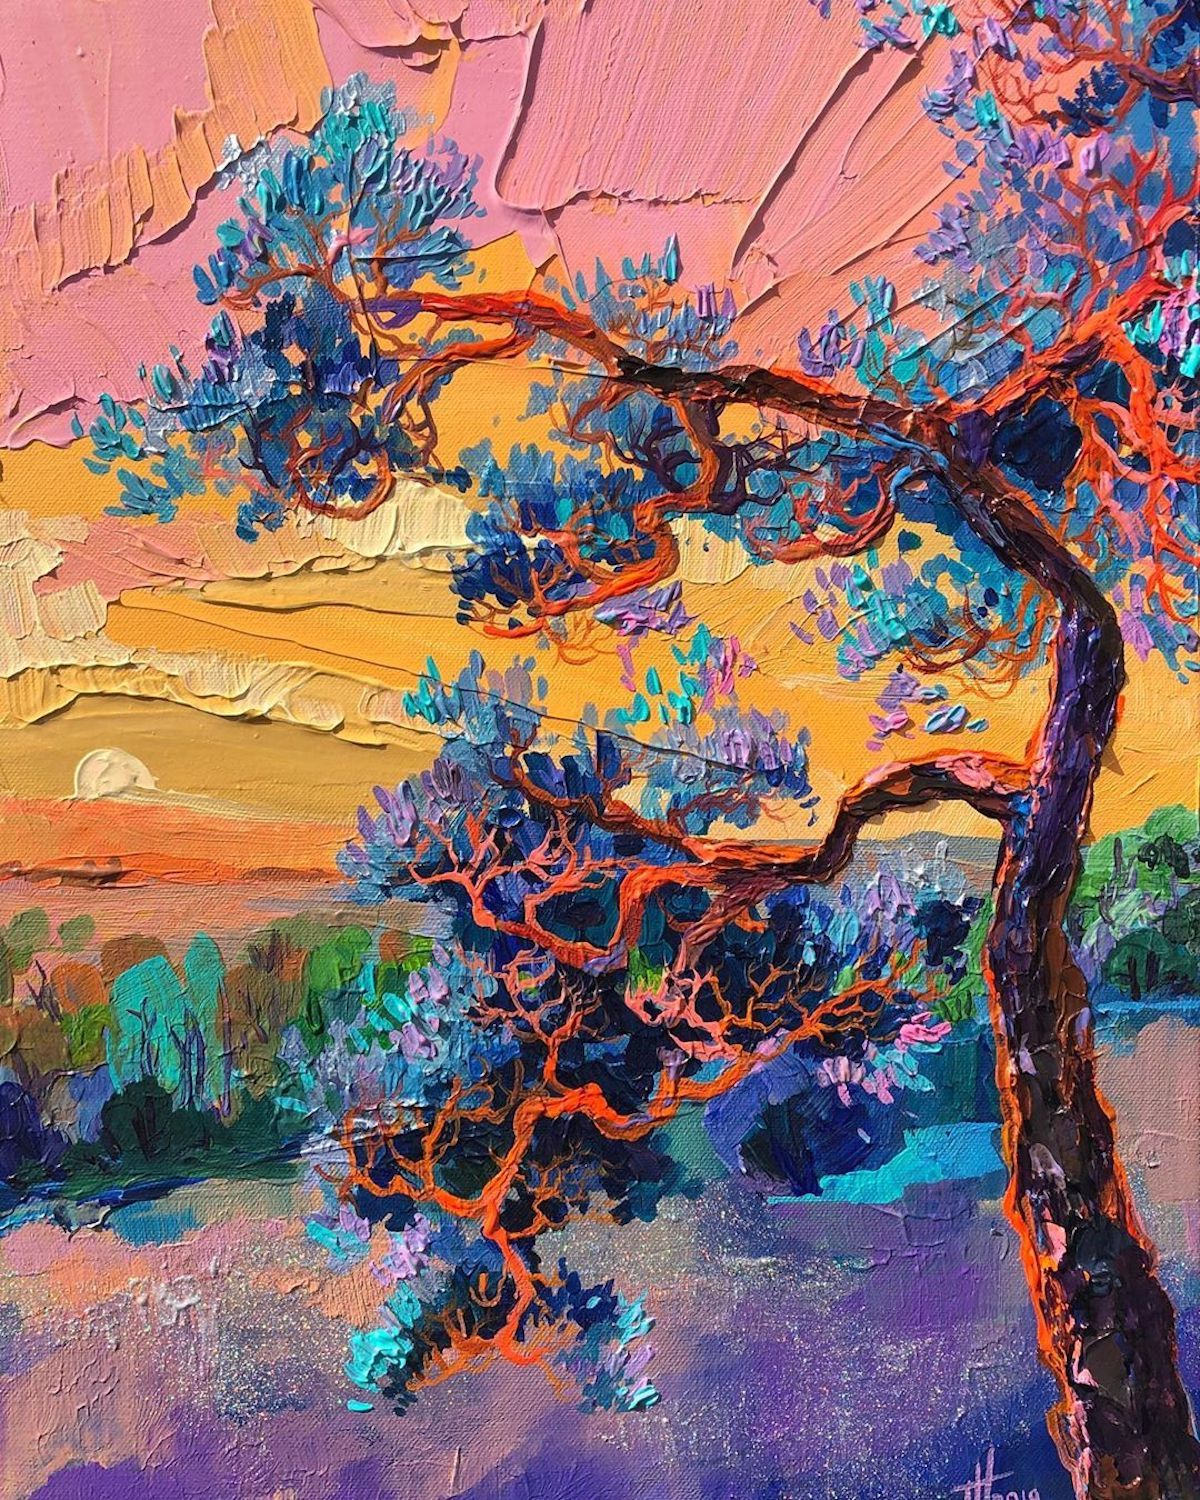 Brilliant Textured Paintings Capture European Countrysides In Kaleidoscopic Colors In 2020 Ladscape Painting Painting Colorful Oil Painting